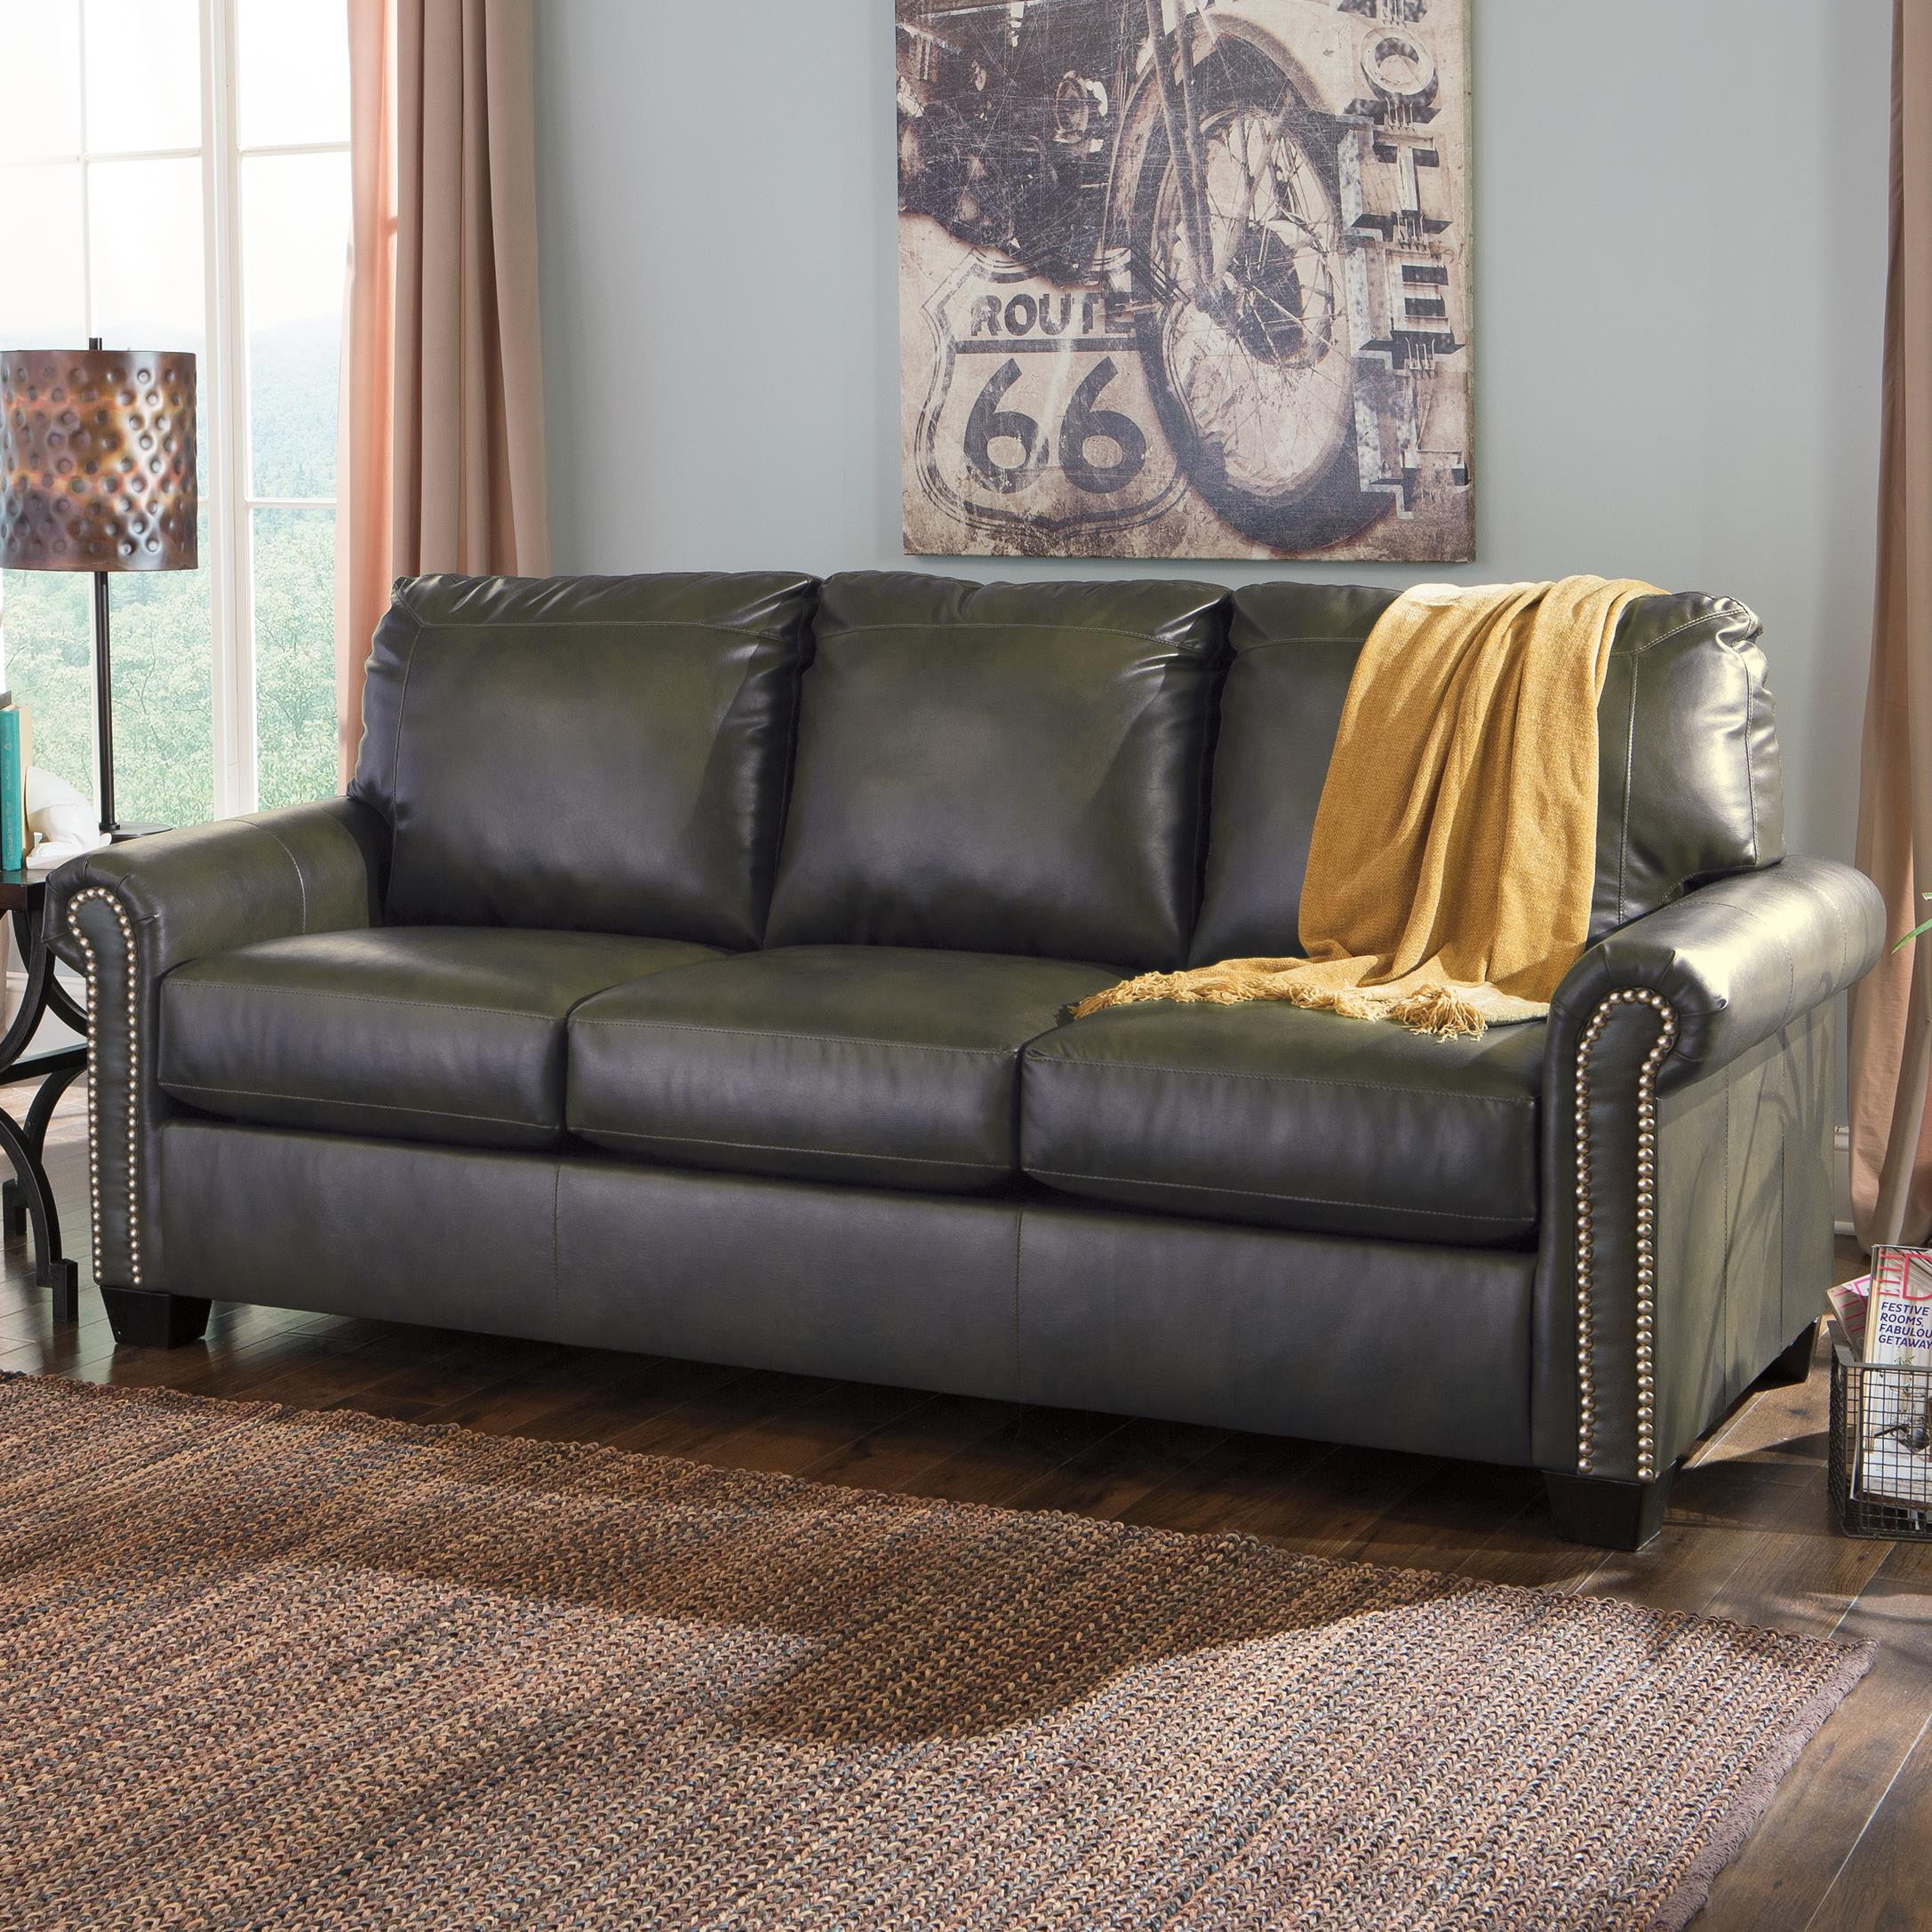 Signature Design by Ashley Lottie DuraBlend® Queen Sofa Sleeper - Item Number: 3800139